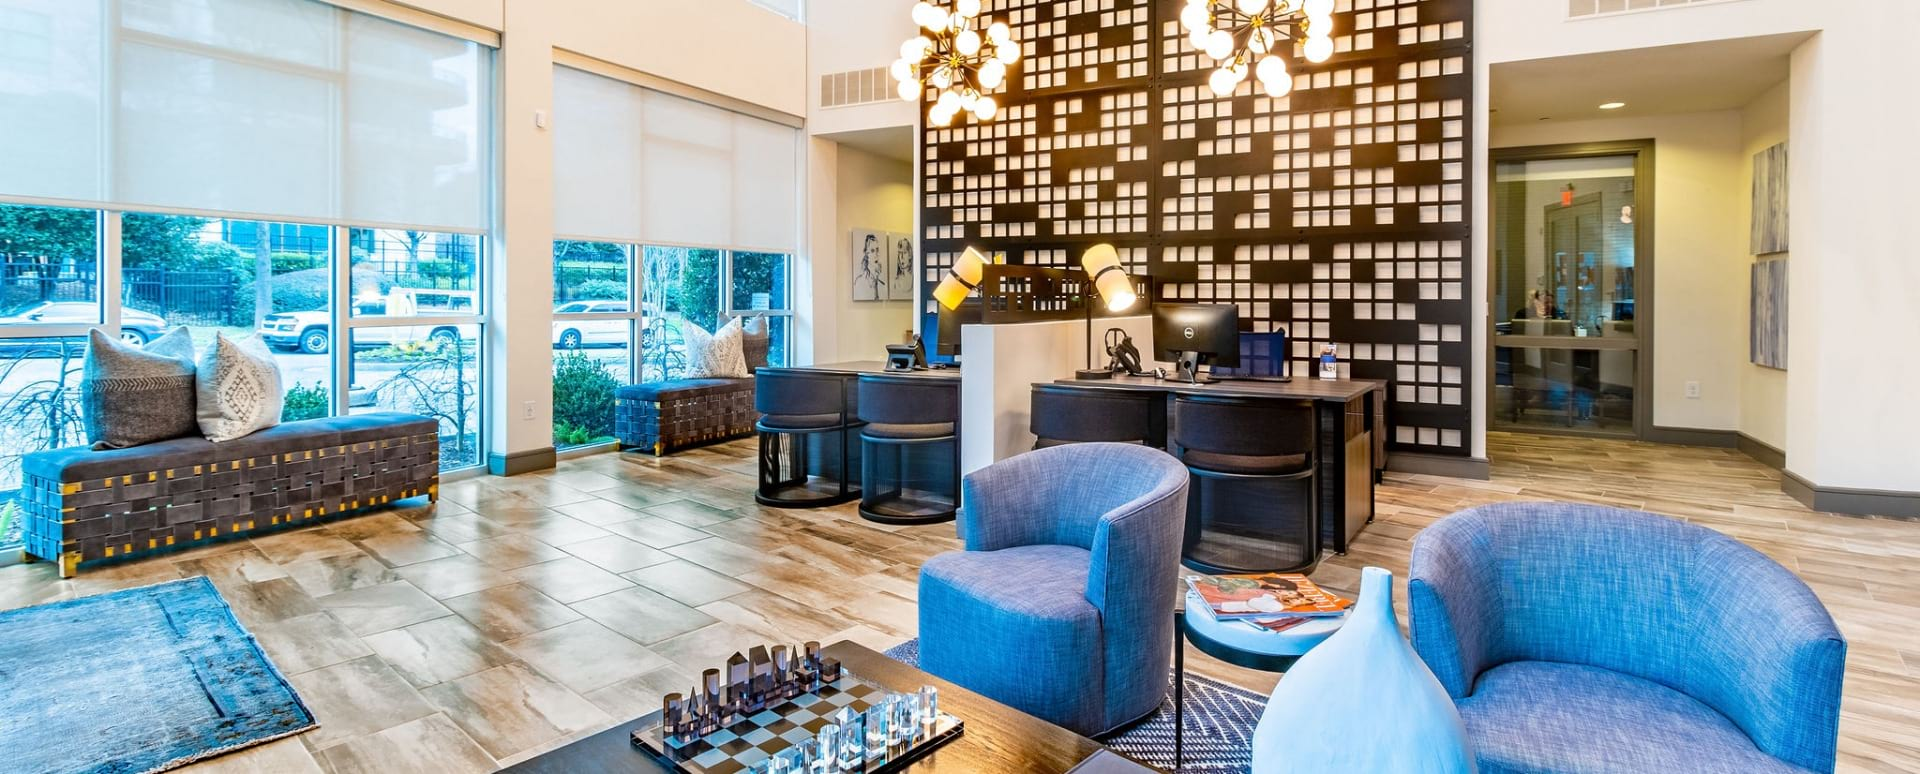 Resident Lounge at Phipps Plaza Apartments